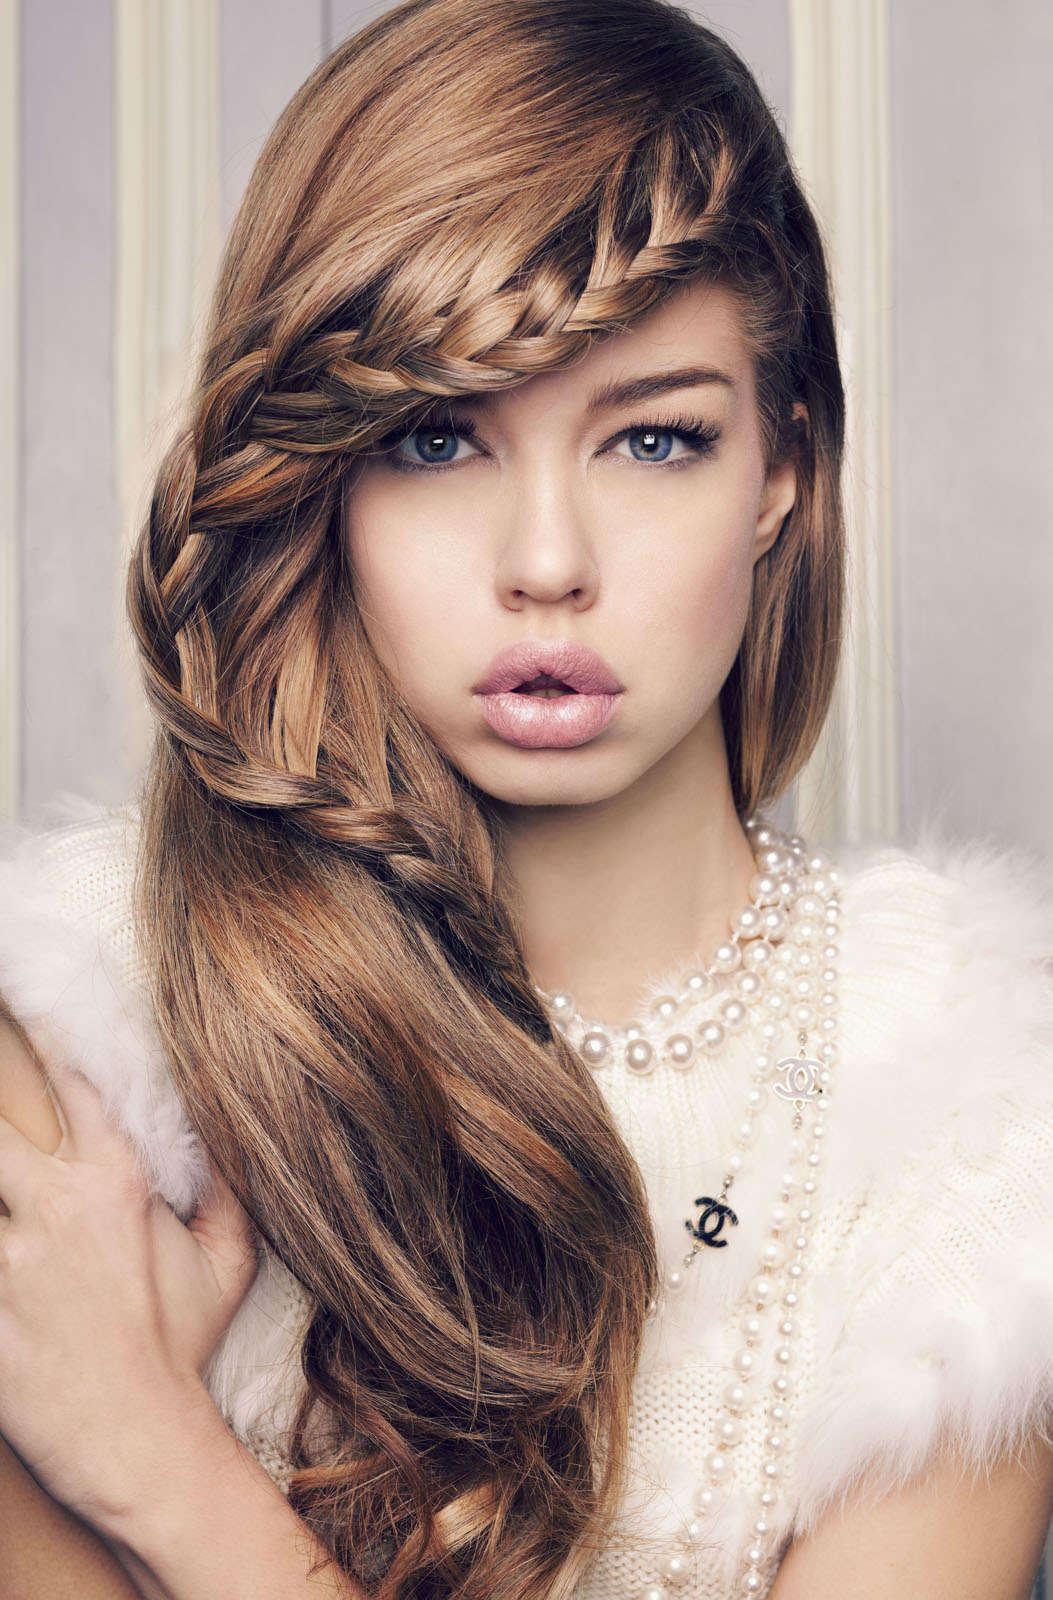 Incredible 24 Gorgeously Creative Braided Hairstyles For Women Styles Weekly Hairstyles For Women Draintrainus